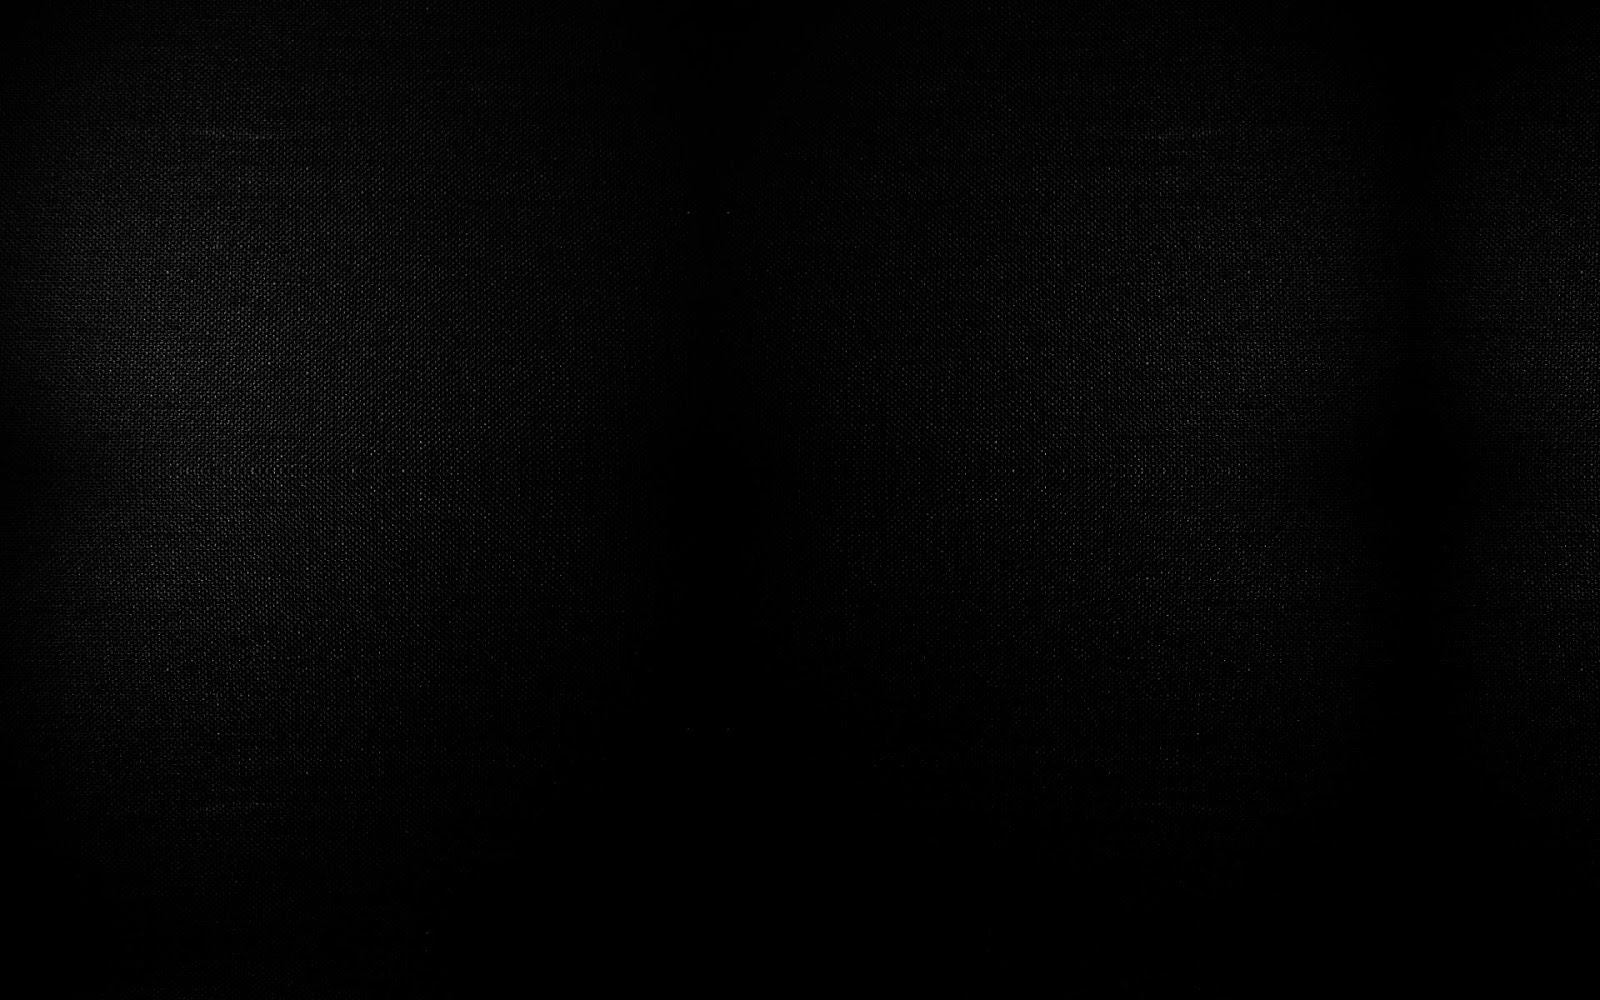 Black Background Download Wallpaper DaWallpaperz 1600x1000